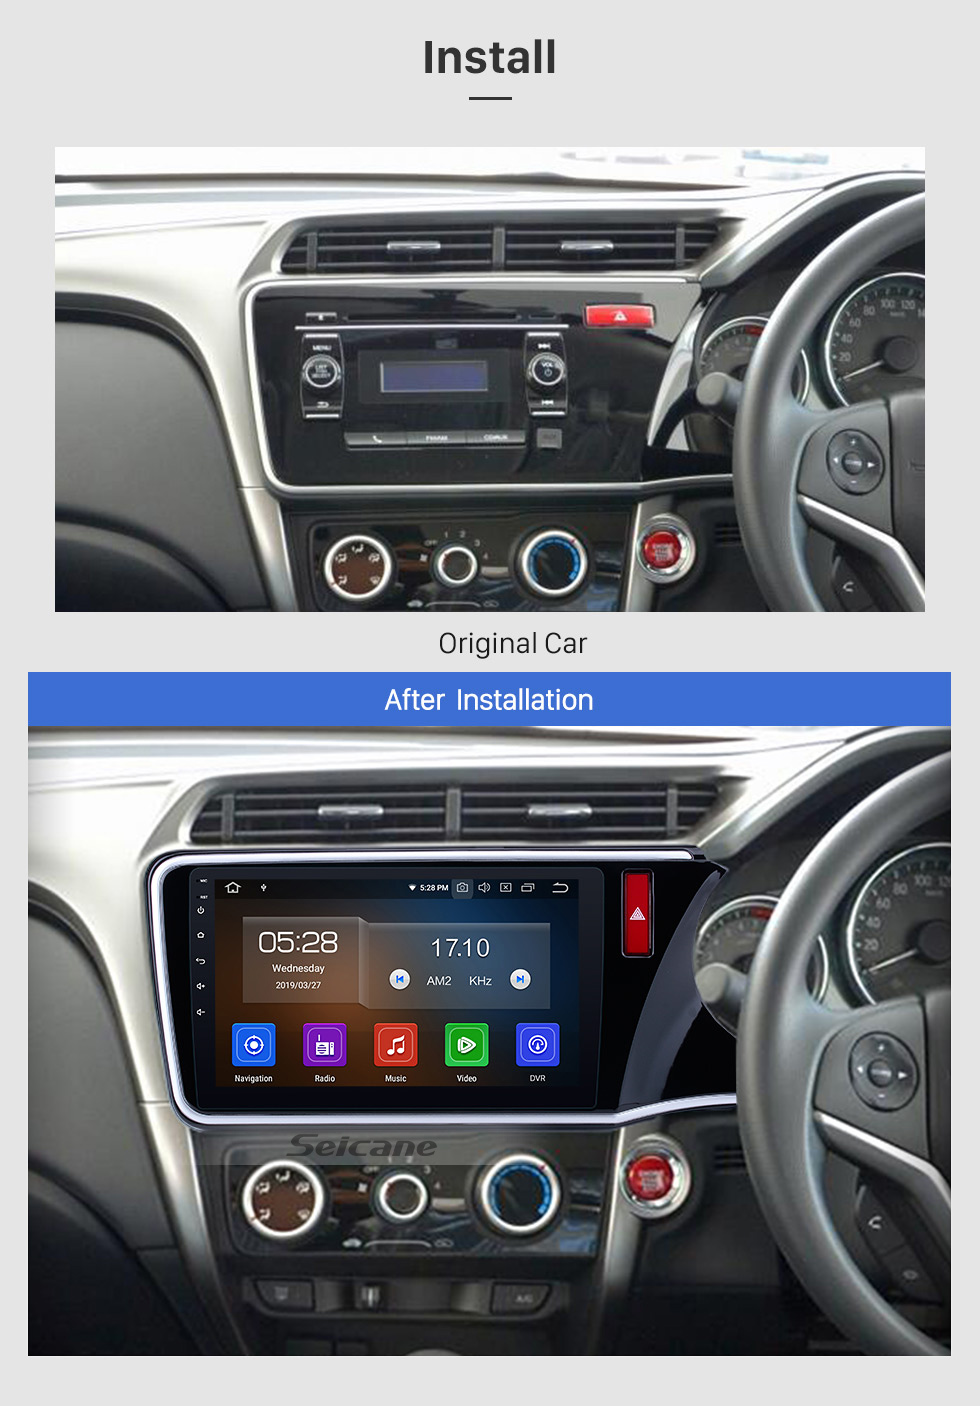 Seicane 10.1 inch Android 9.0 HD Touch Screen radio GPS navigation System for 2014 2015 2016 2017 Honda CITY (RHD) with Bluetooth Music Mirror Link OBD2 3G WiFi Backup Camera 1080P Video AUX Steering Wheel Control